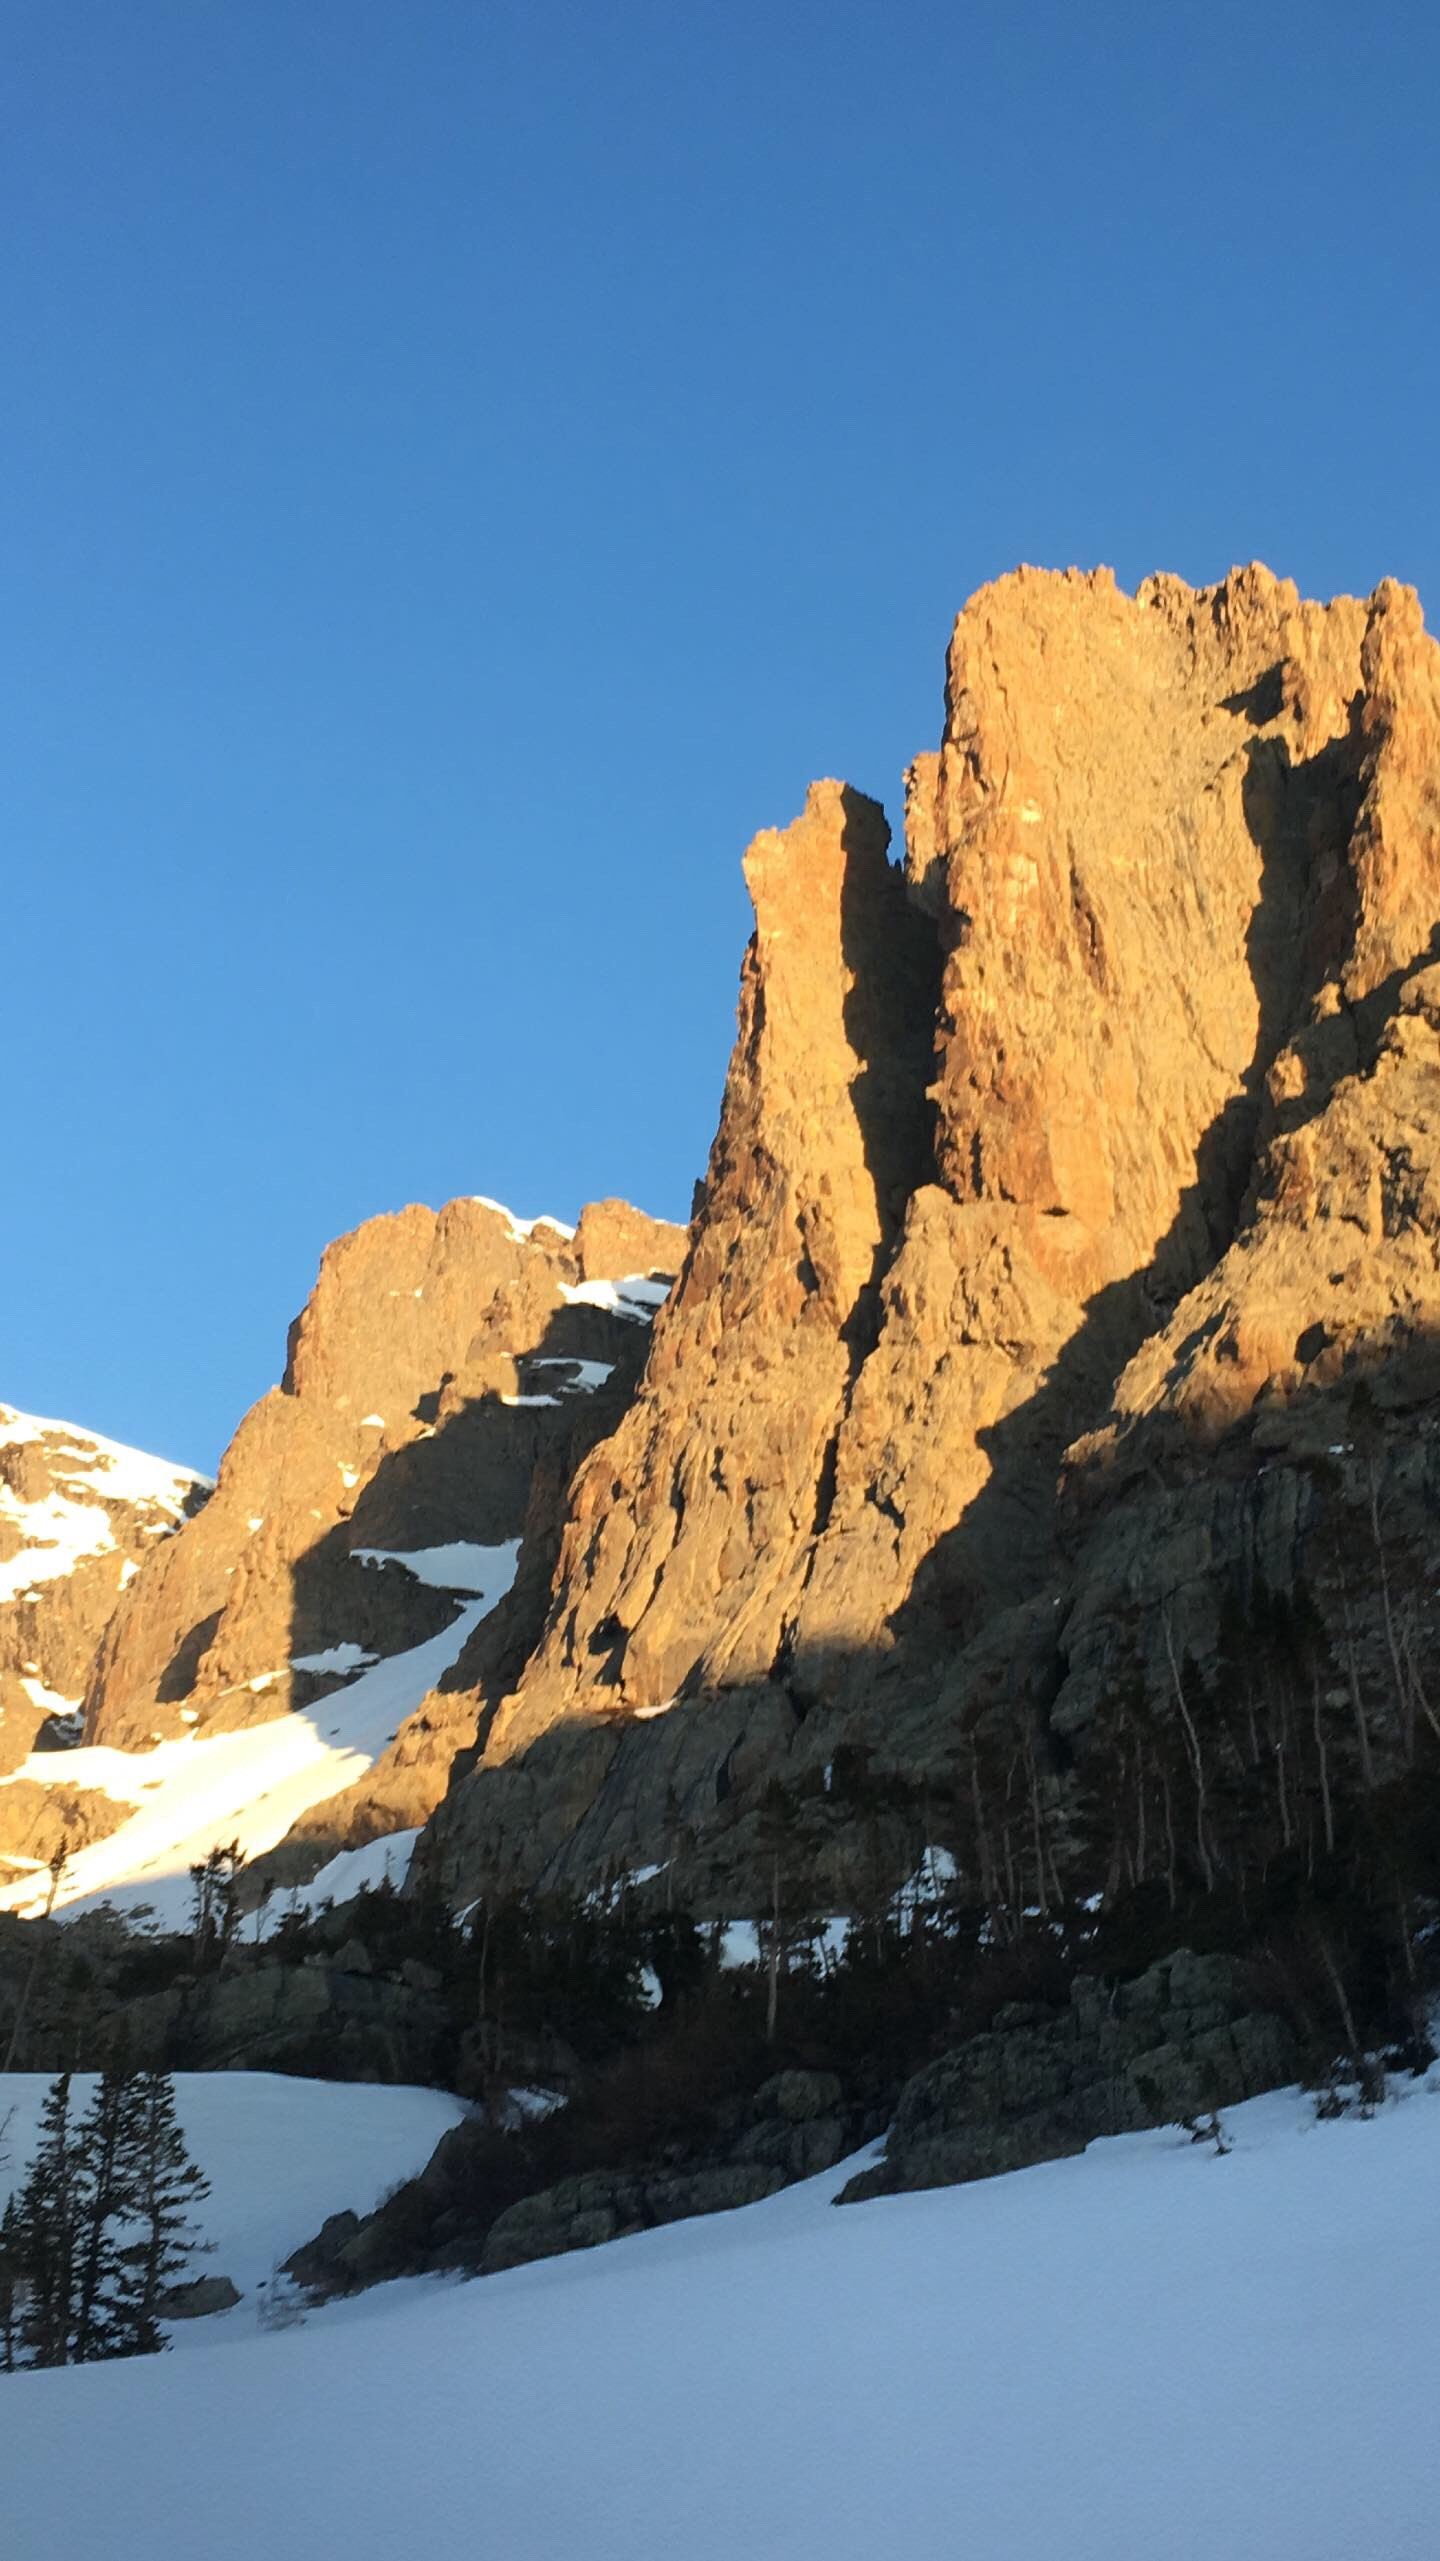 Petit Grepon Rocky Mountain National Park Rock Climb in dawn sunlight with snow June